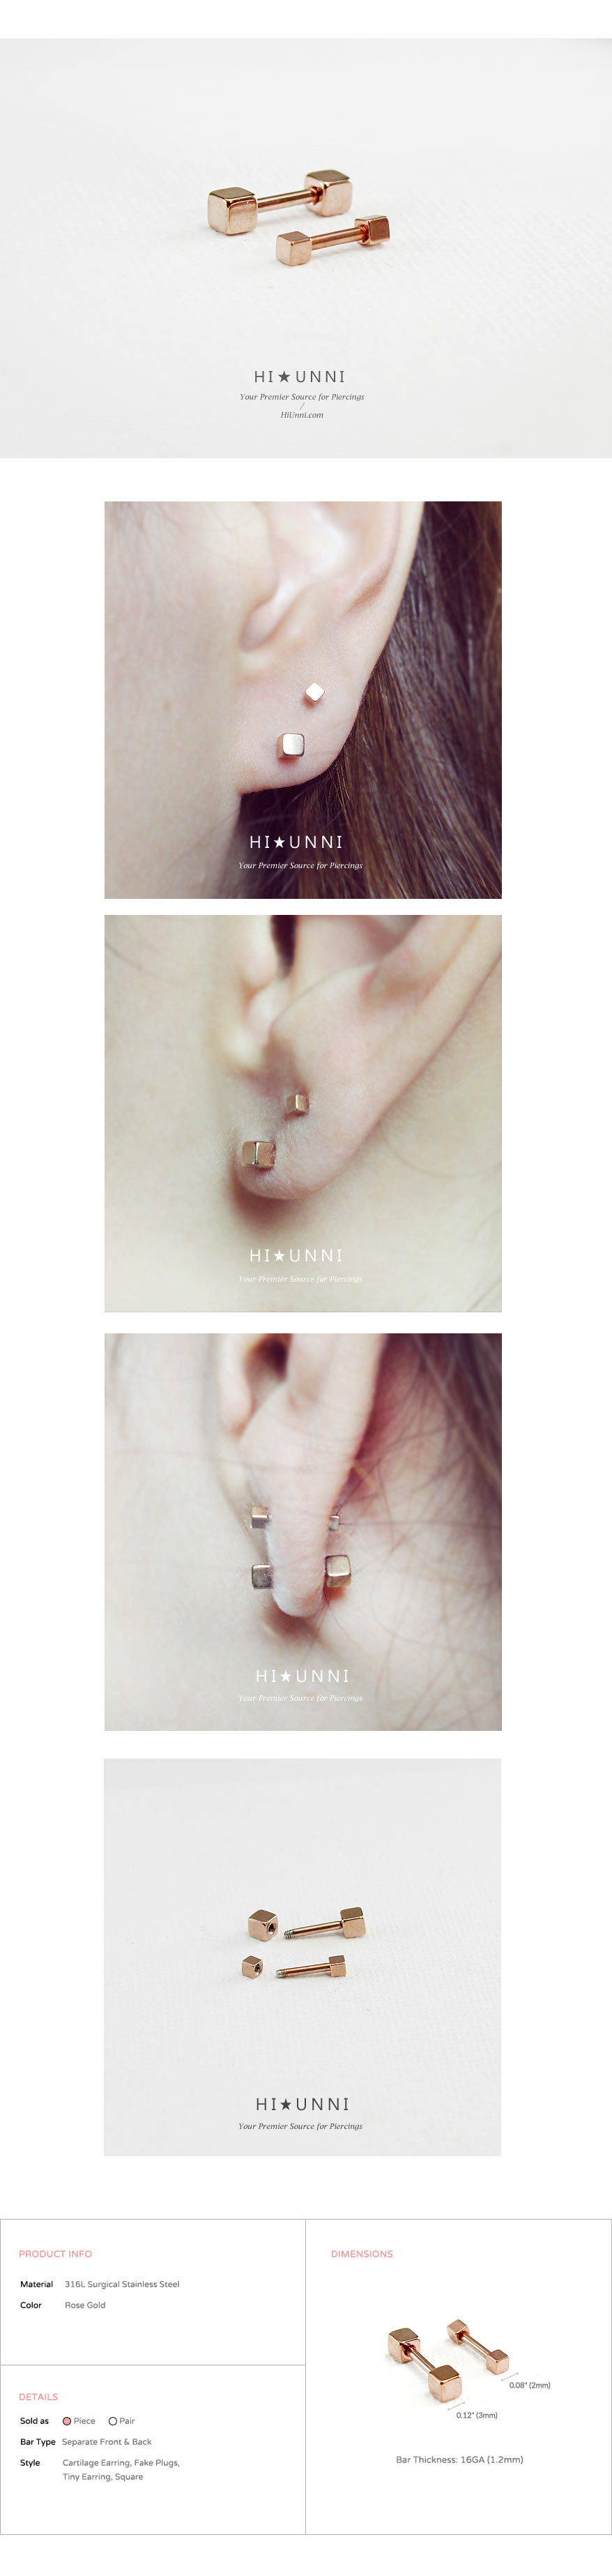 316l_surgical_steel_ear_cartilage_piercing_earrings_16__earstuds_barbell_fake_plug_square_tragus_rose_gold_4